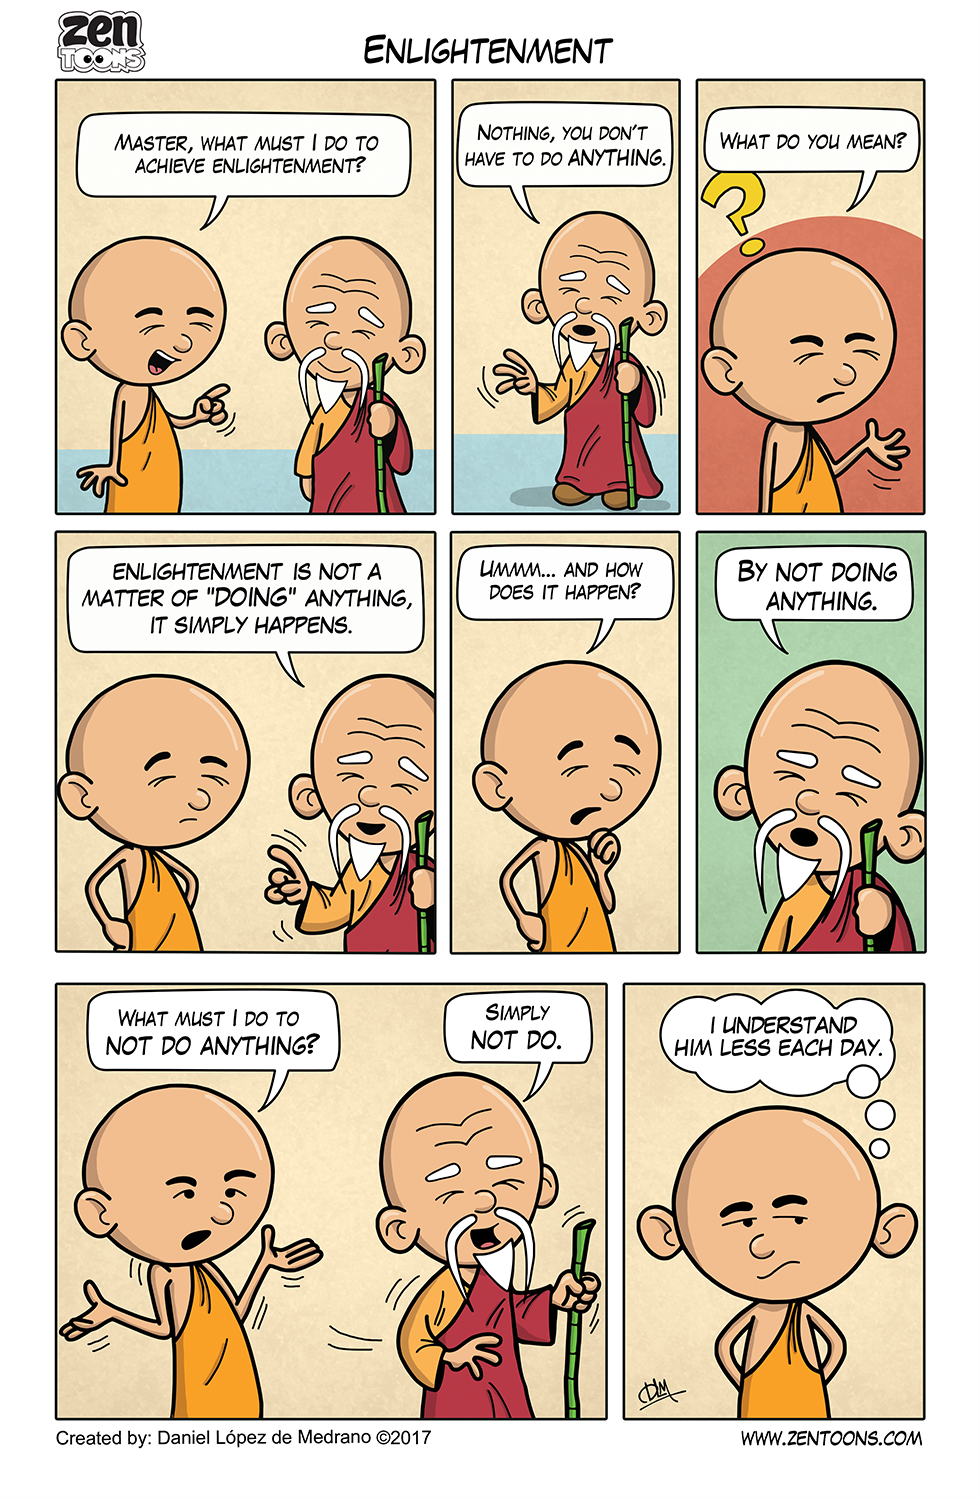 003. ZEN TOONS: Enlightenment